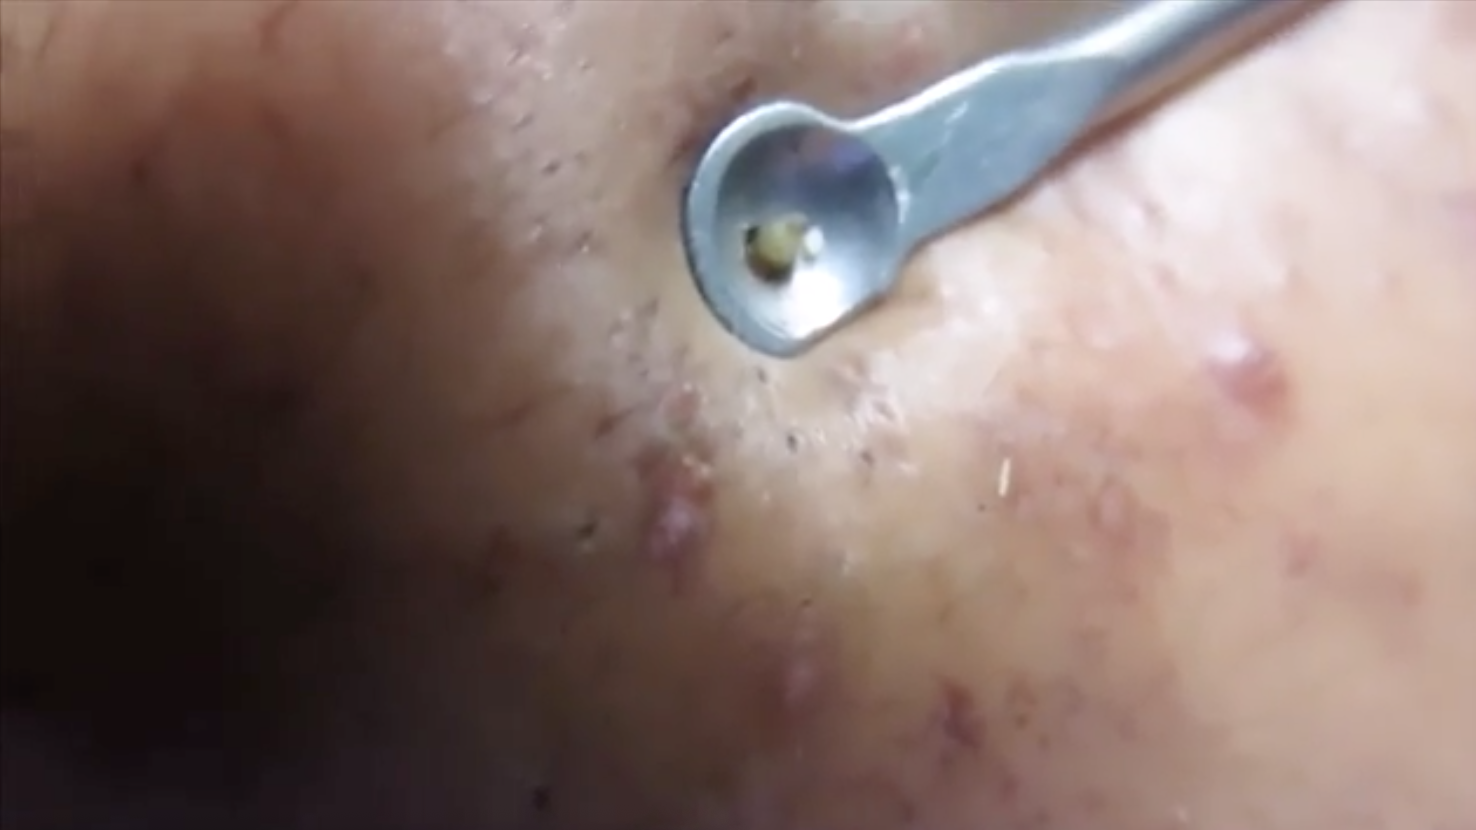 Satisfying Comedone Extraction - Medical Videos